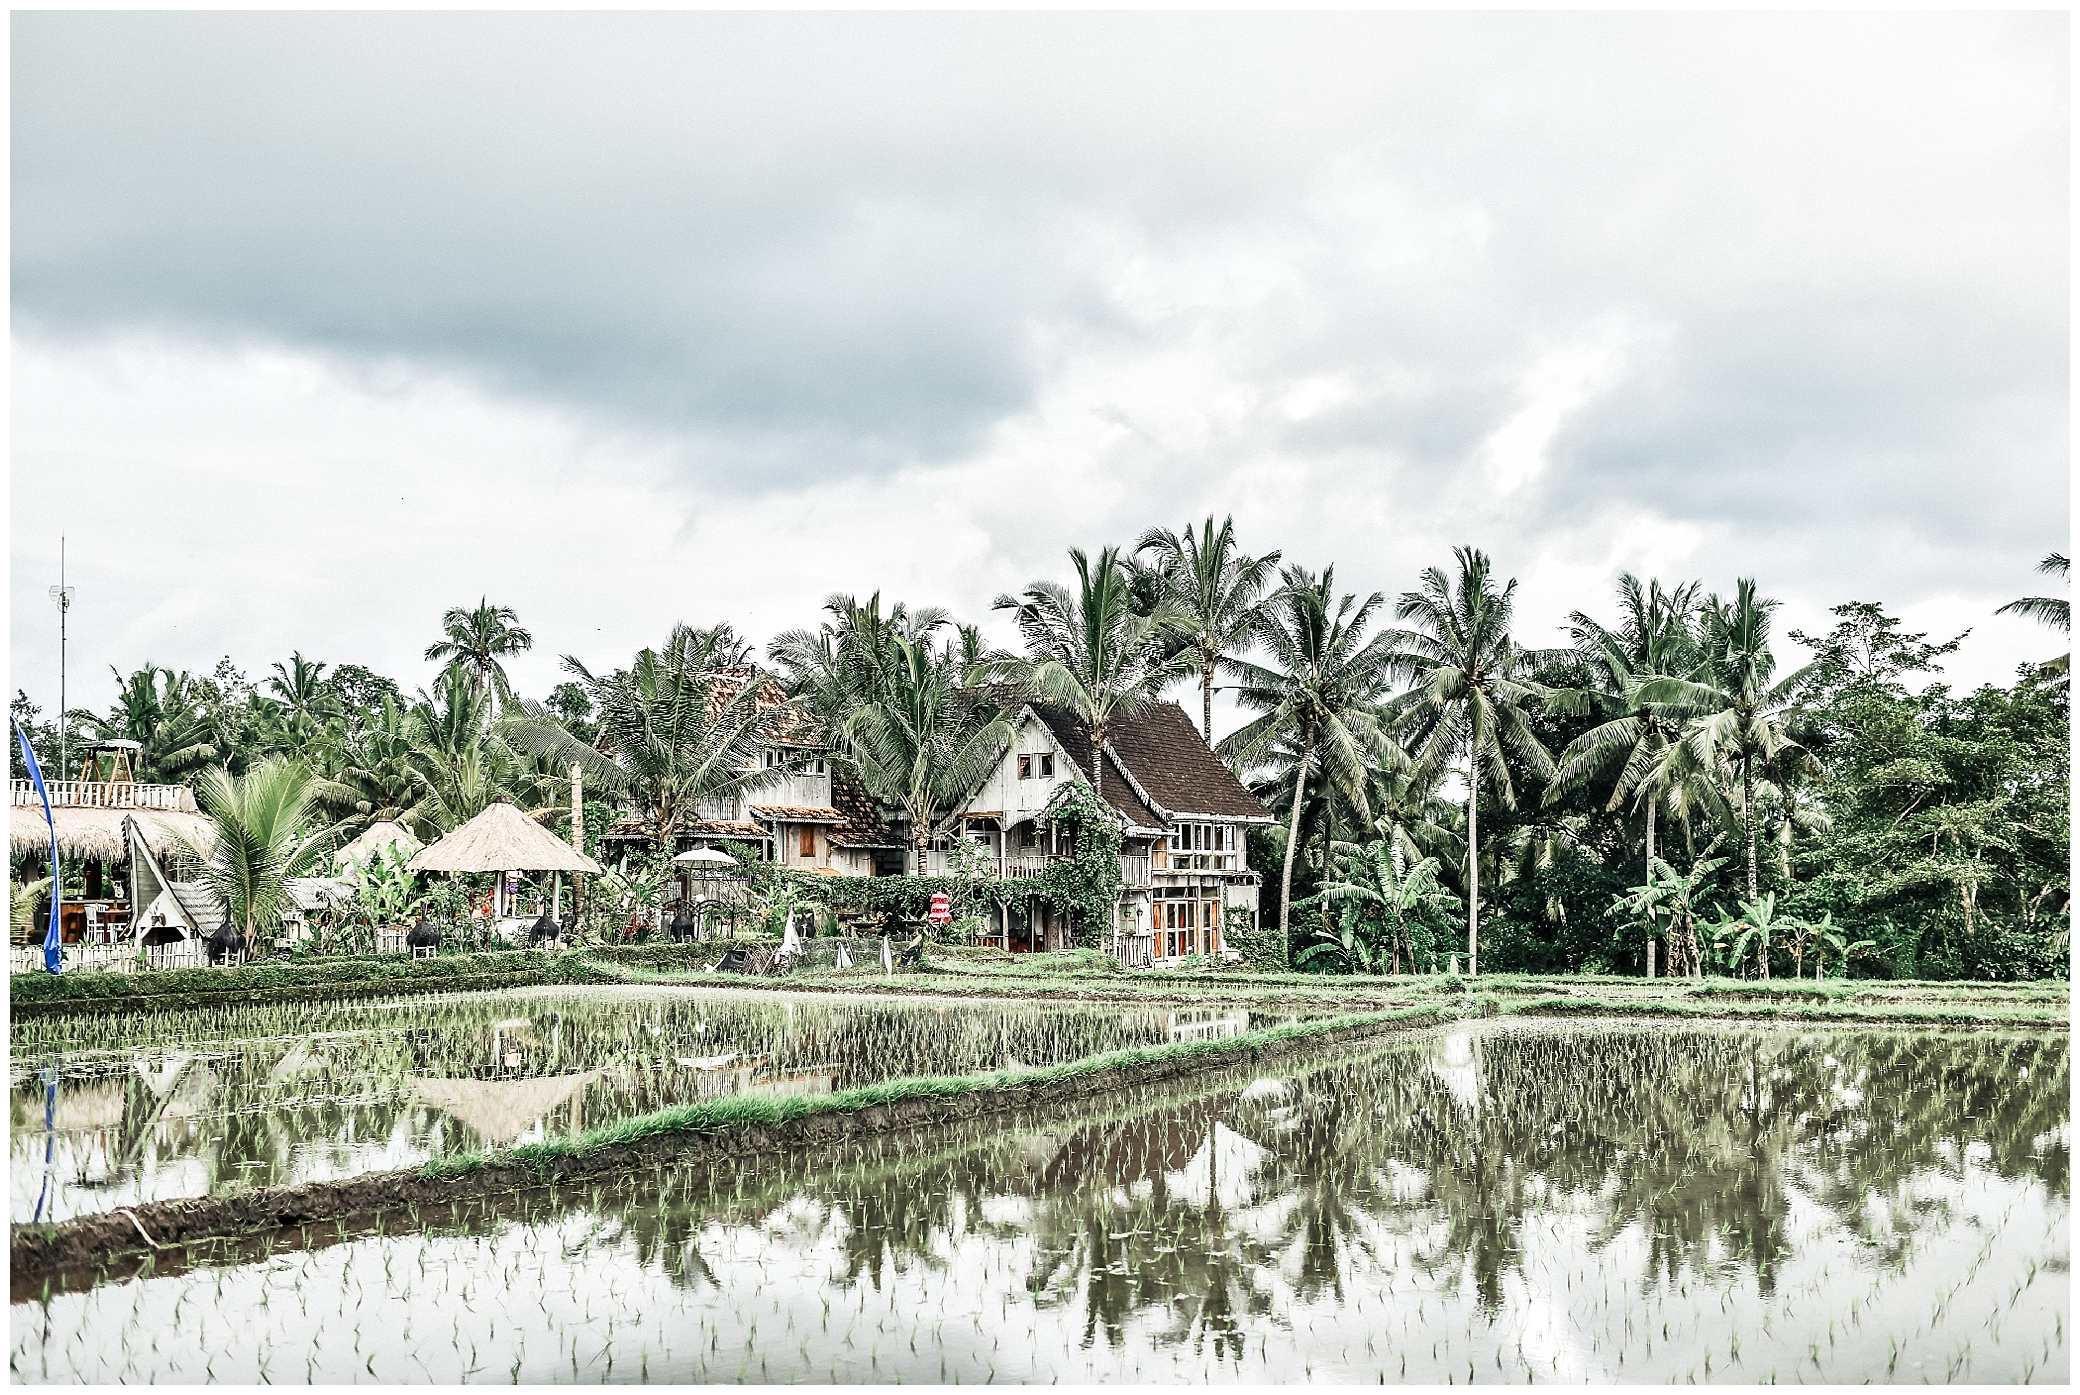 Top 10 Awesome Things To Do In Ubud_0030.jpg